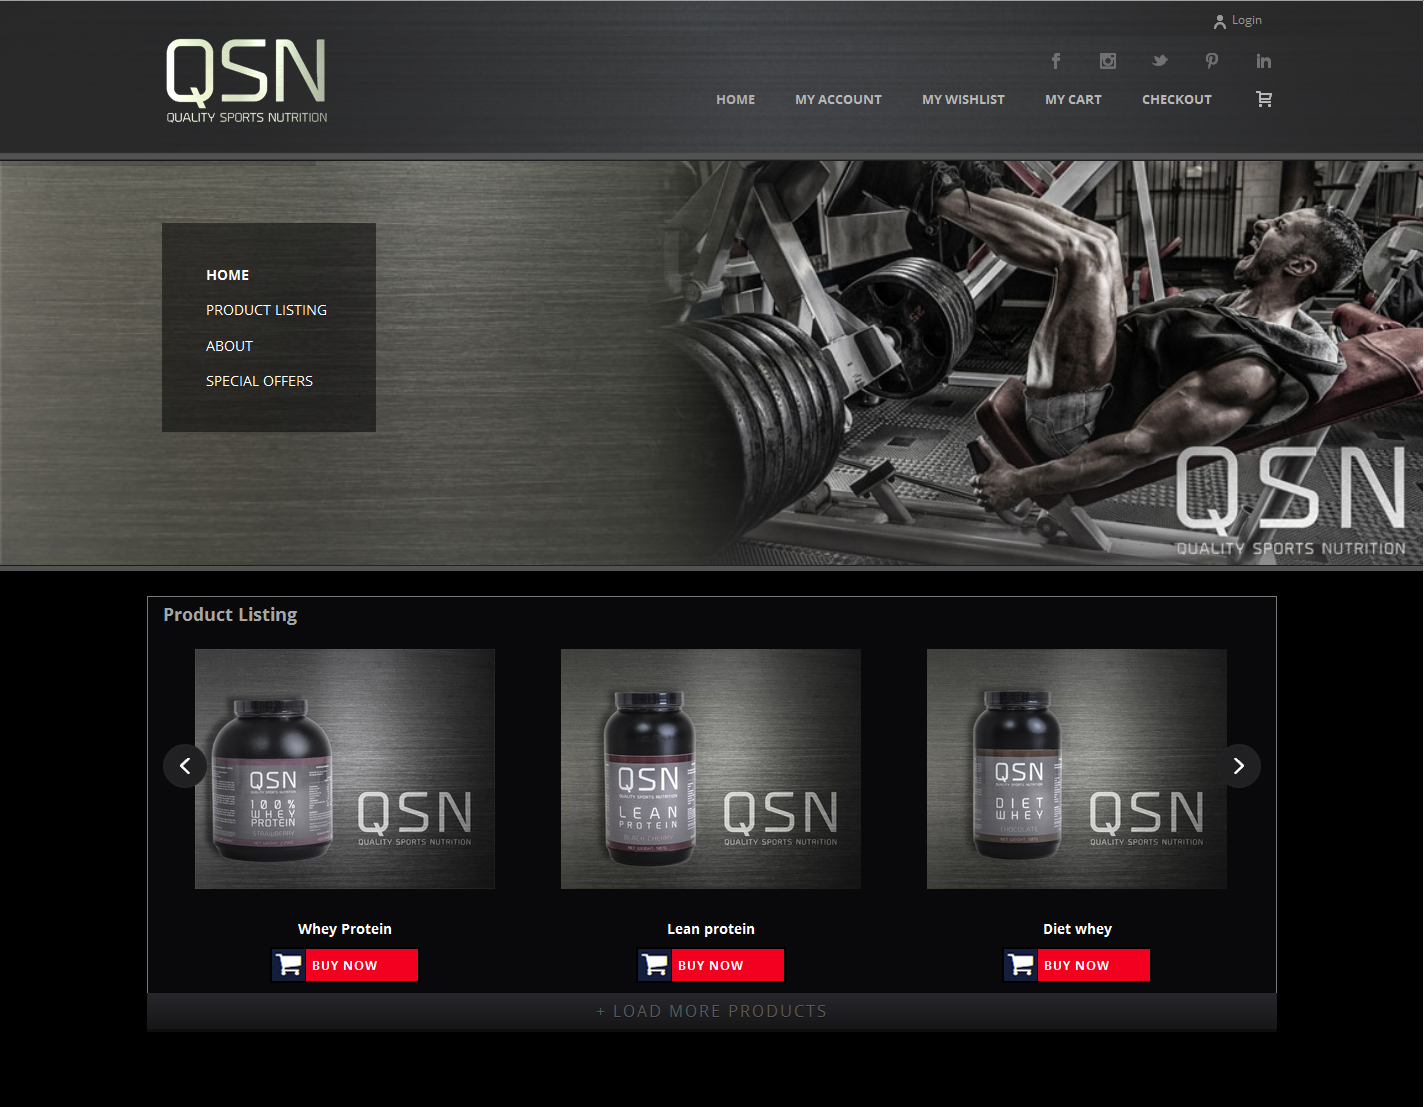 QSN SUPPLEMENTS - qsnsupplements.com